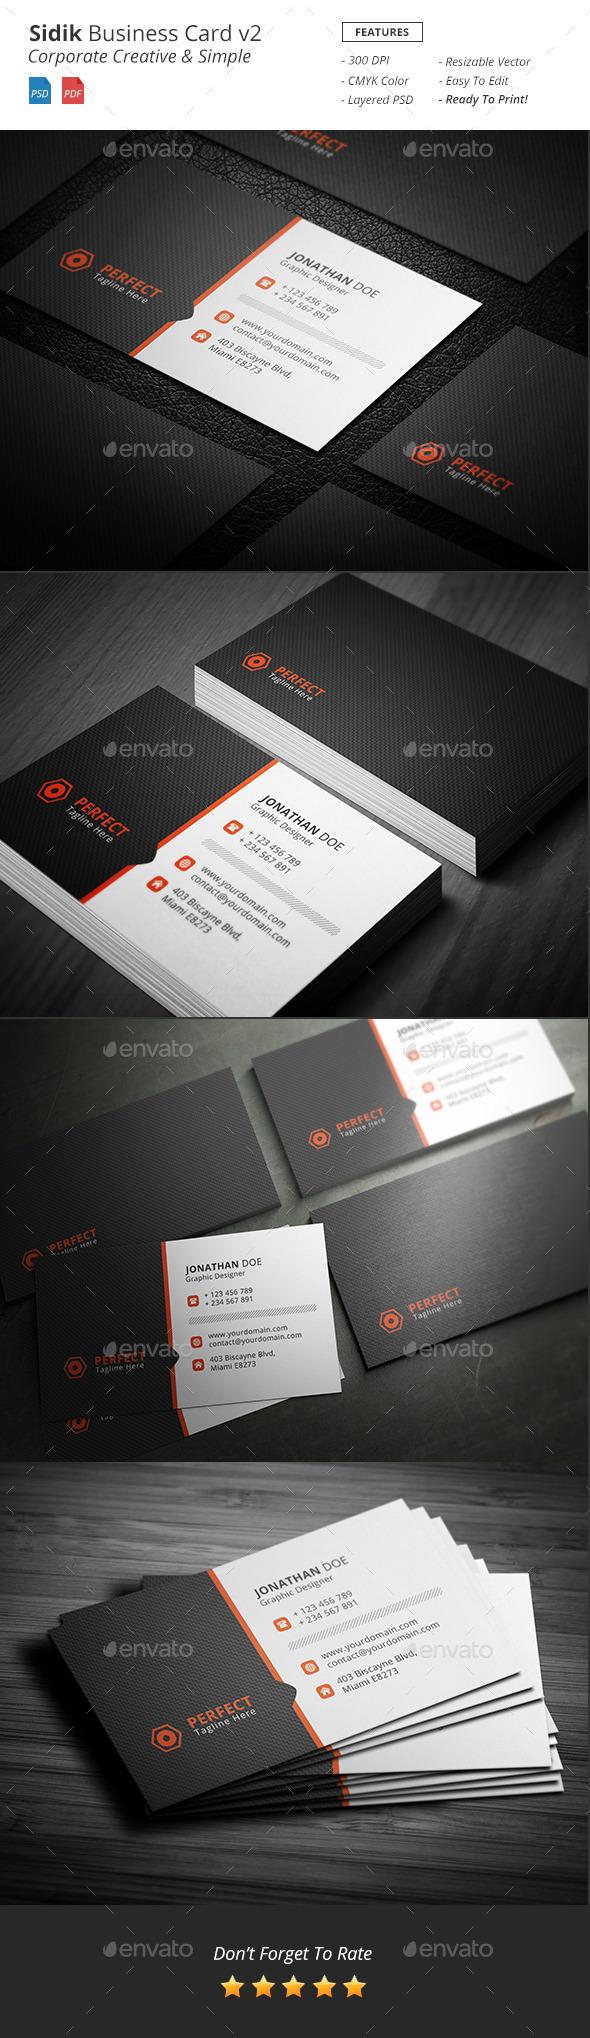 GraphicRiver Sidik Creative Business Card v2 11934081